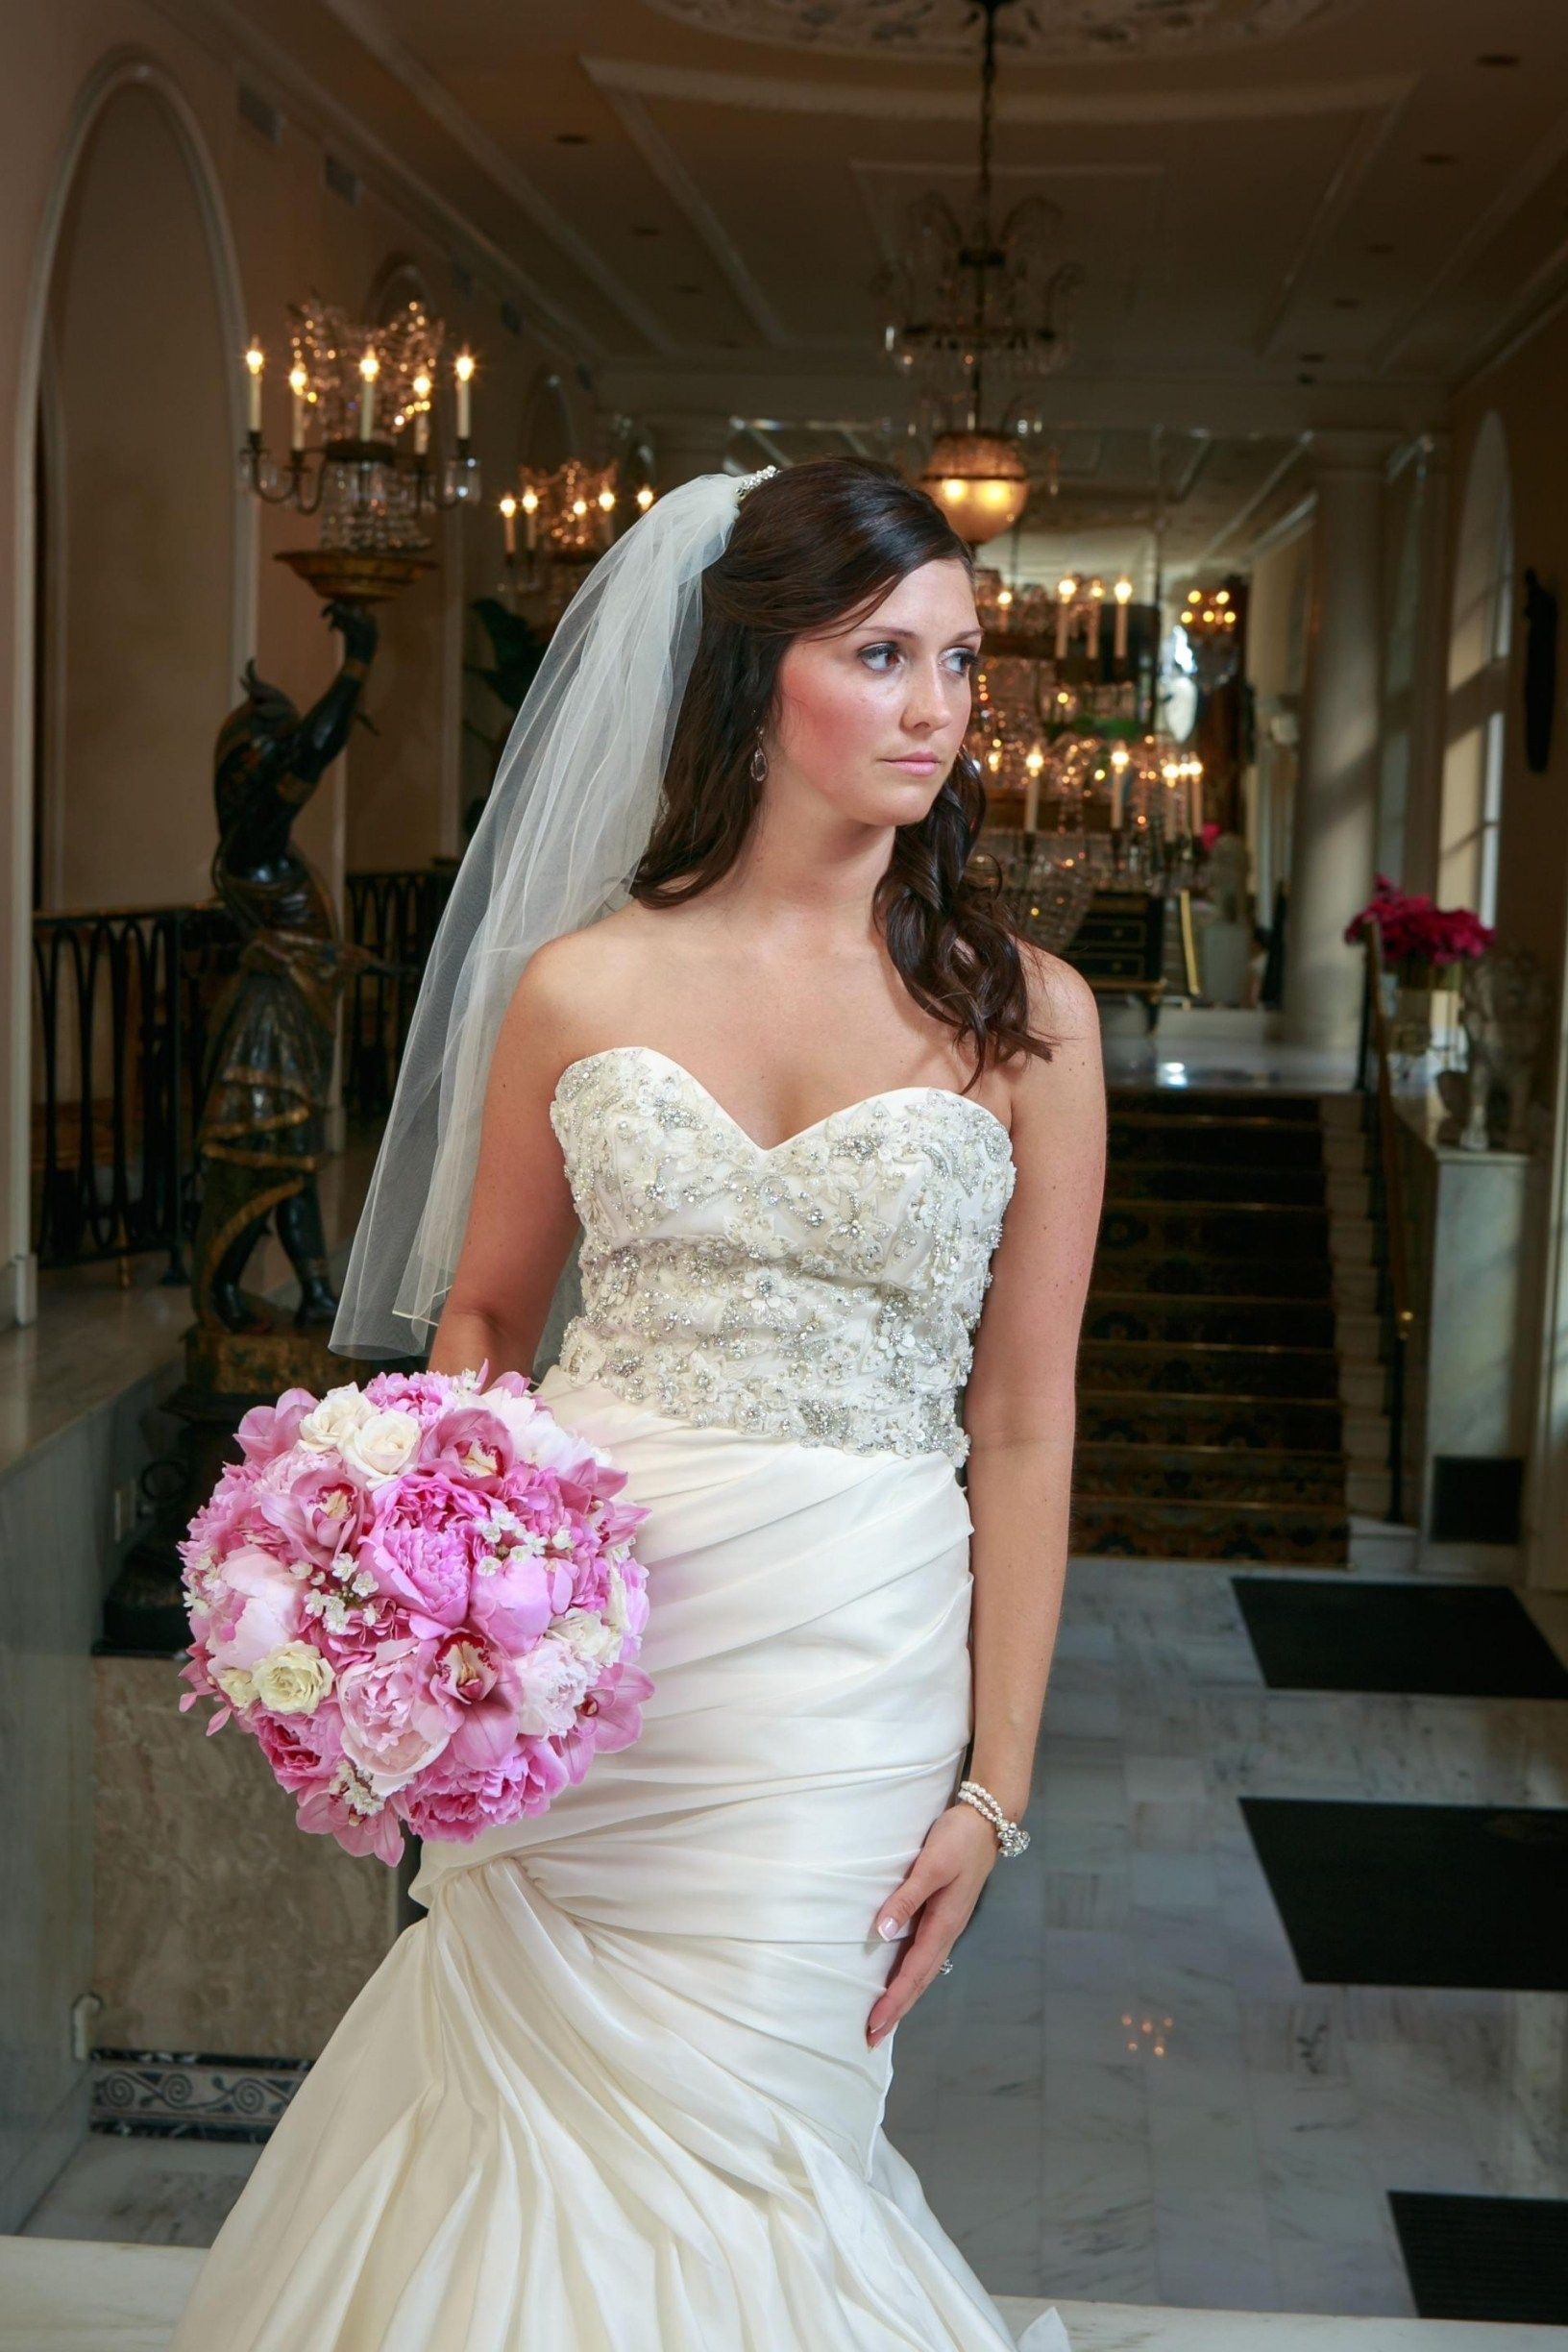 wedding hair and makeup ocala fl | hairstyles ideas for me